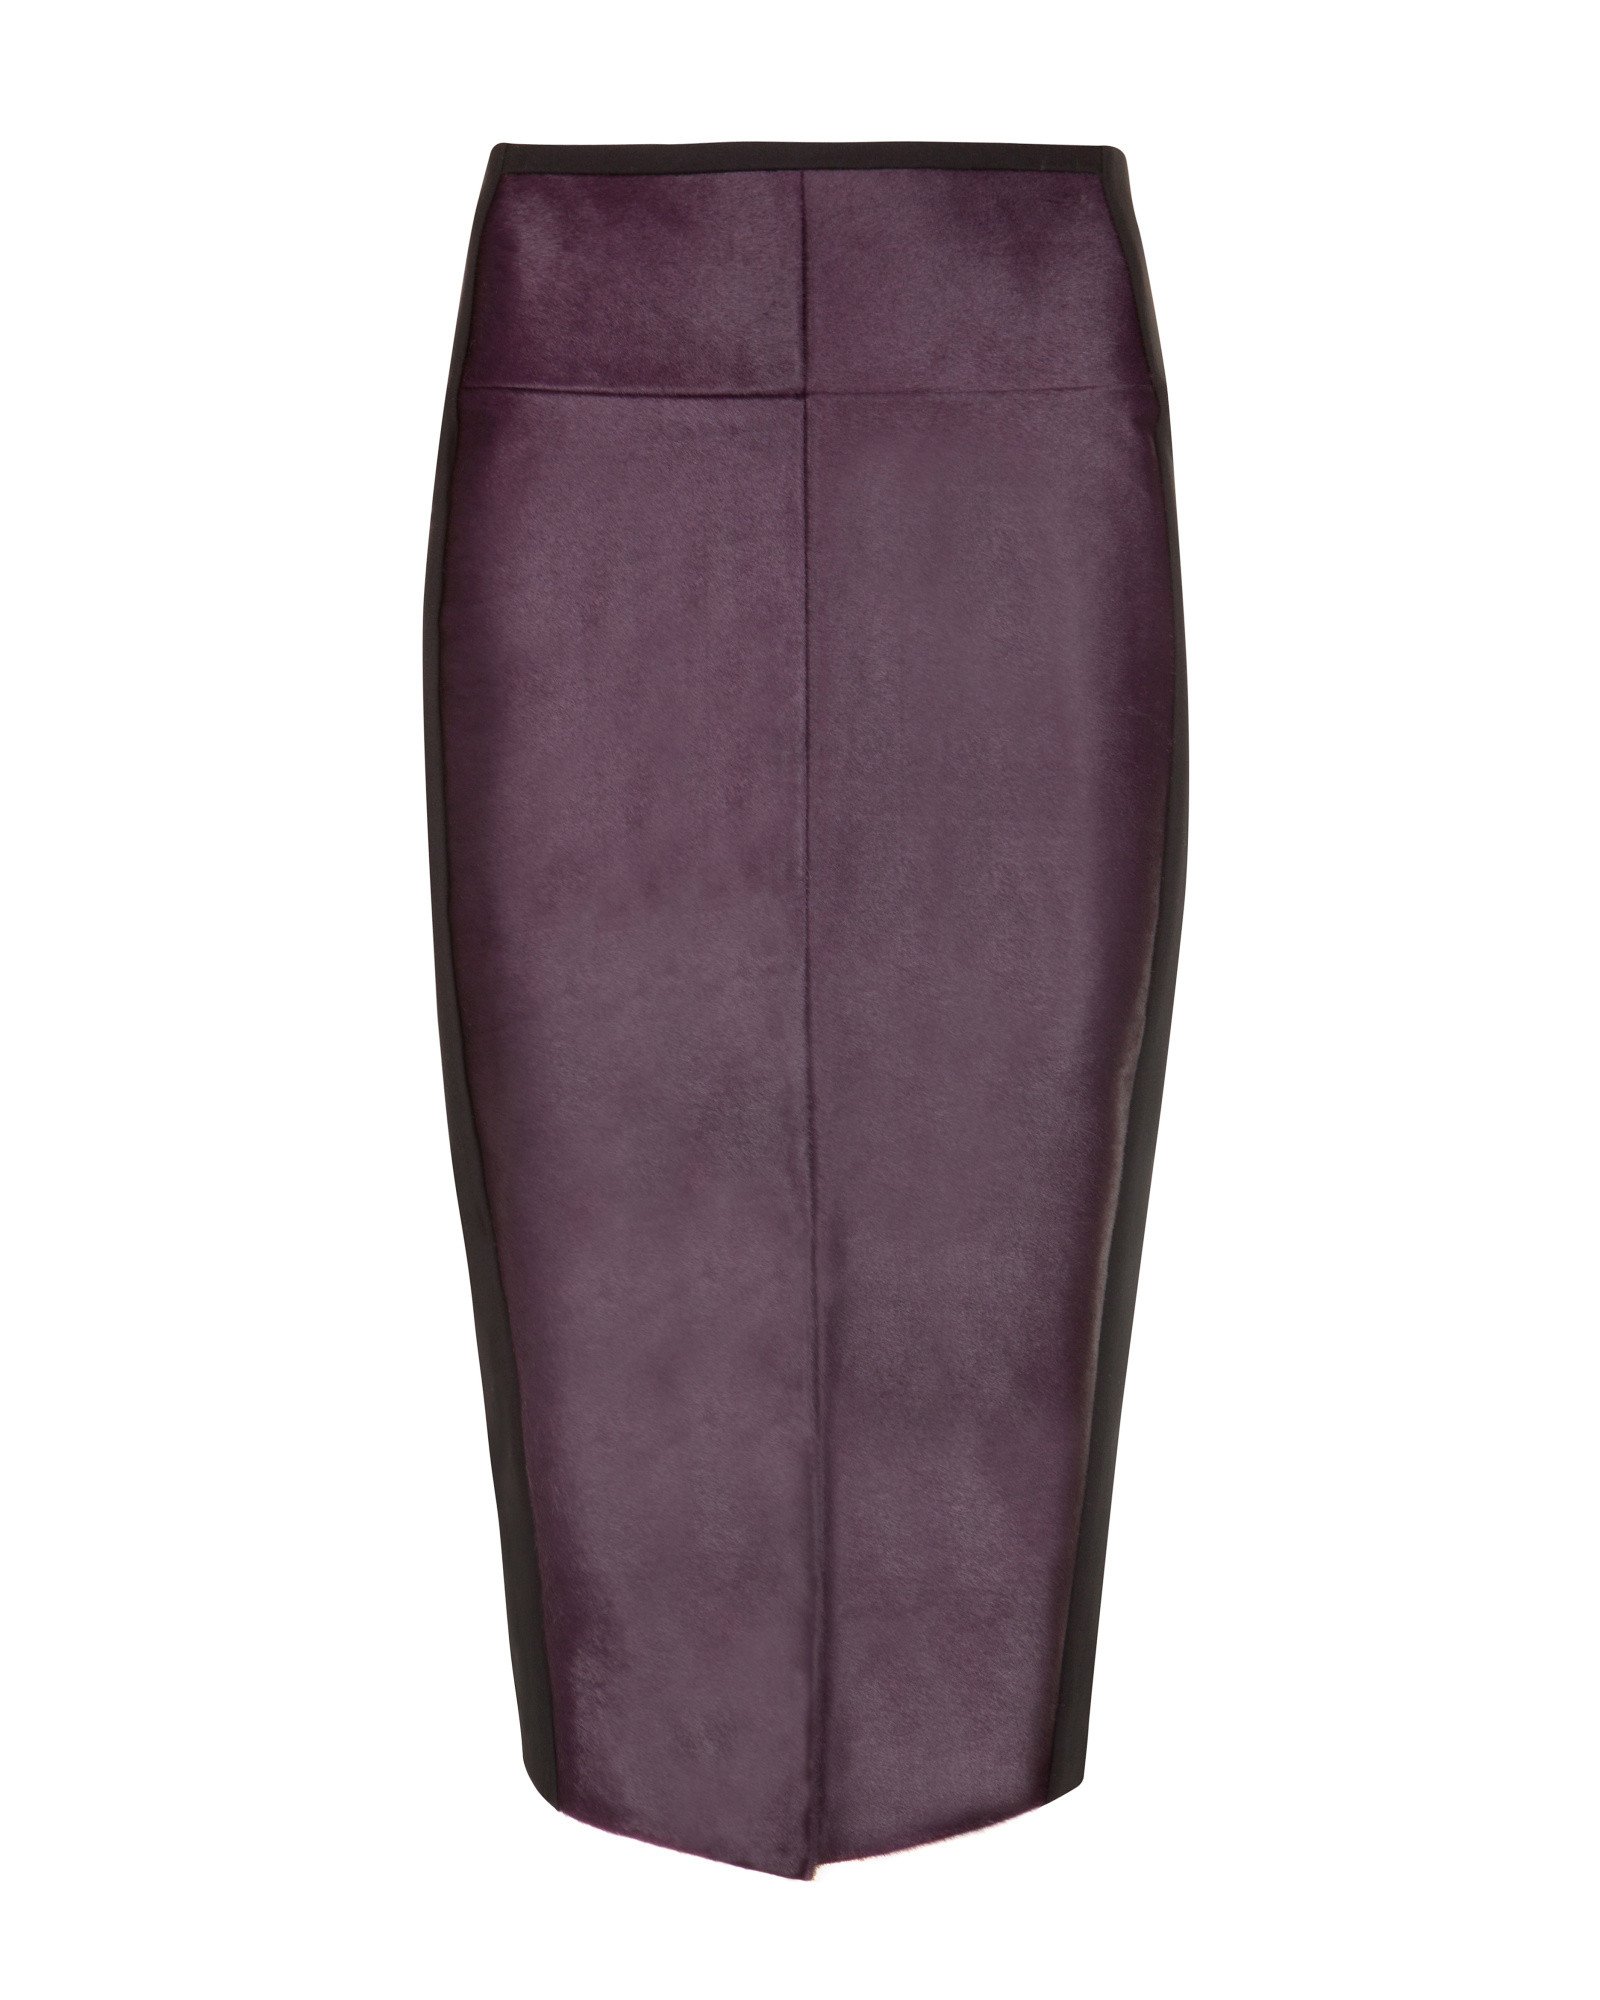 Ted baker Pony Skin Effect Leather Pencil Skirt in Purple | Lyst